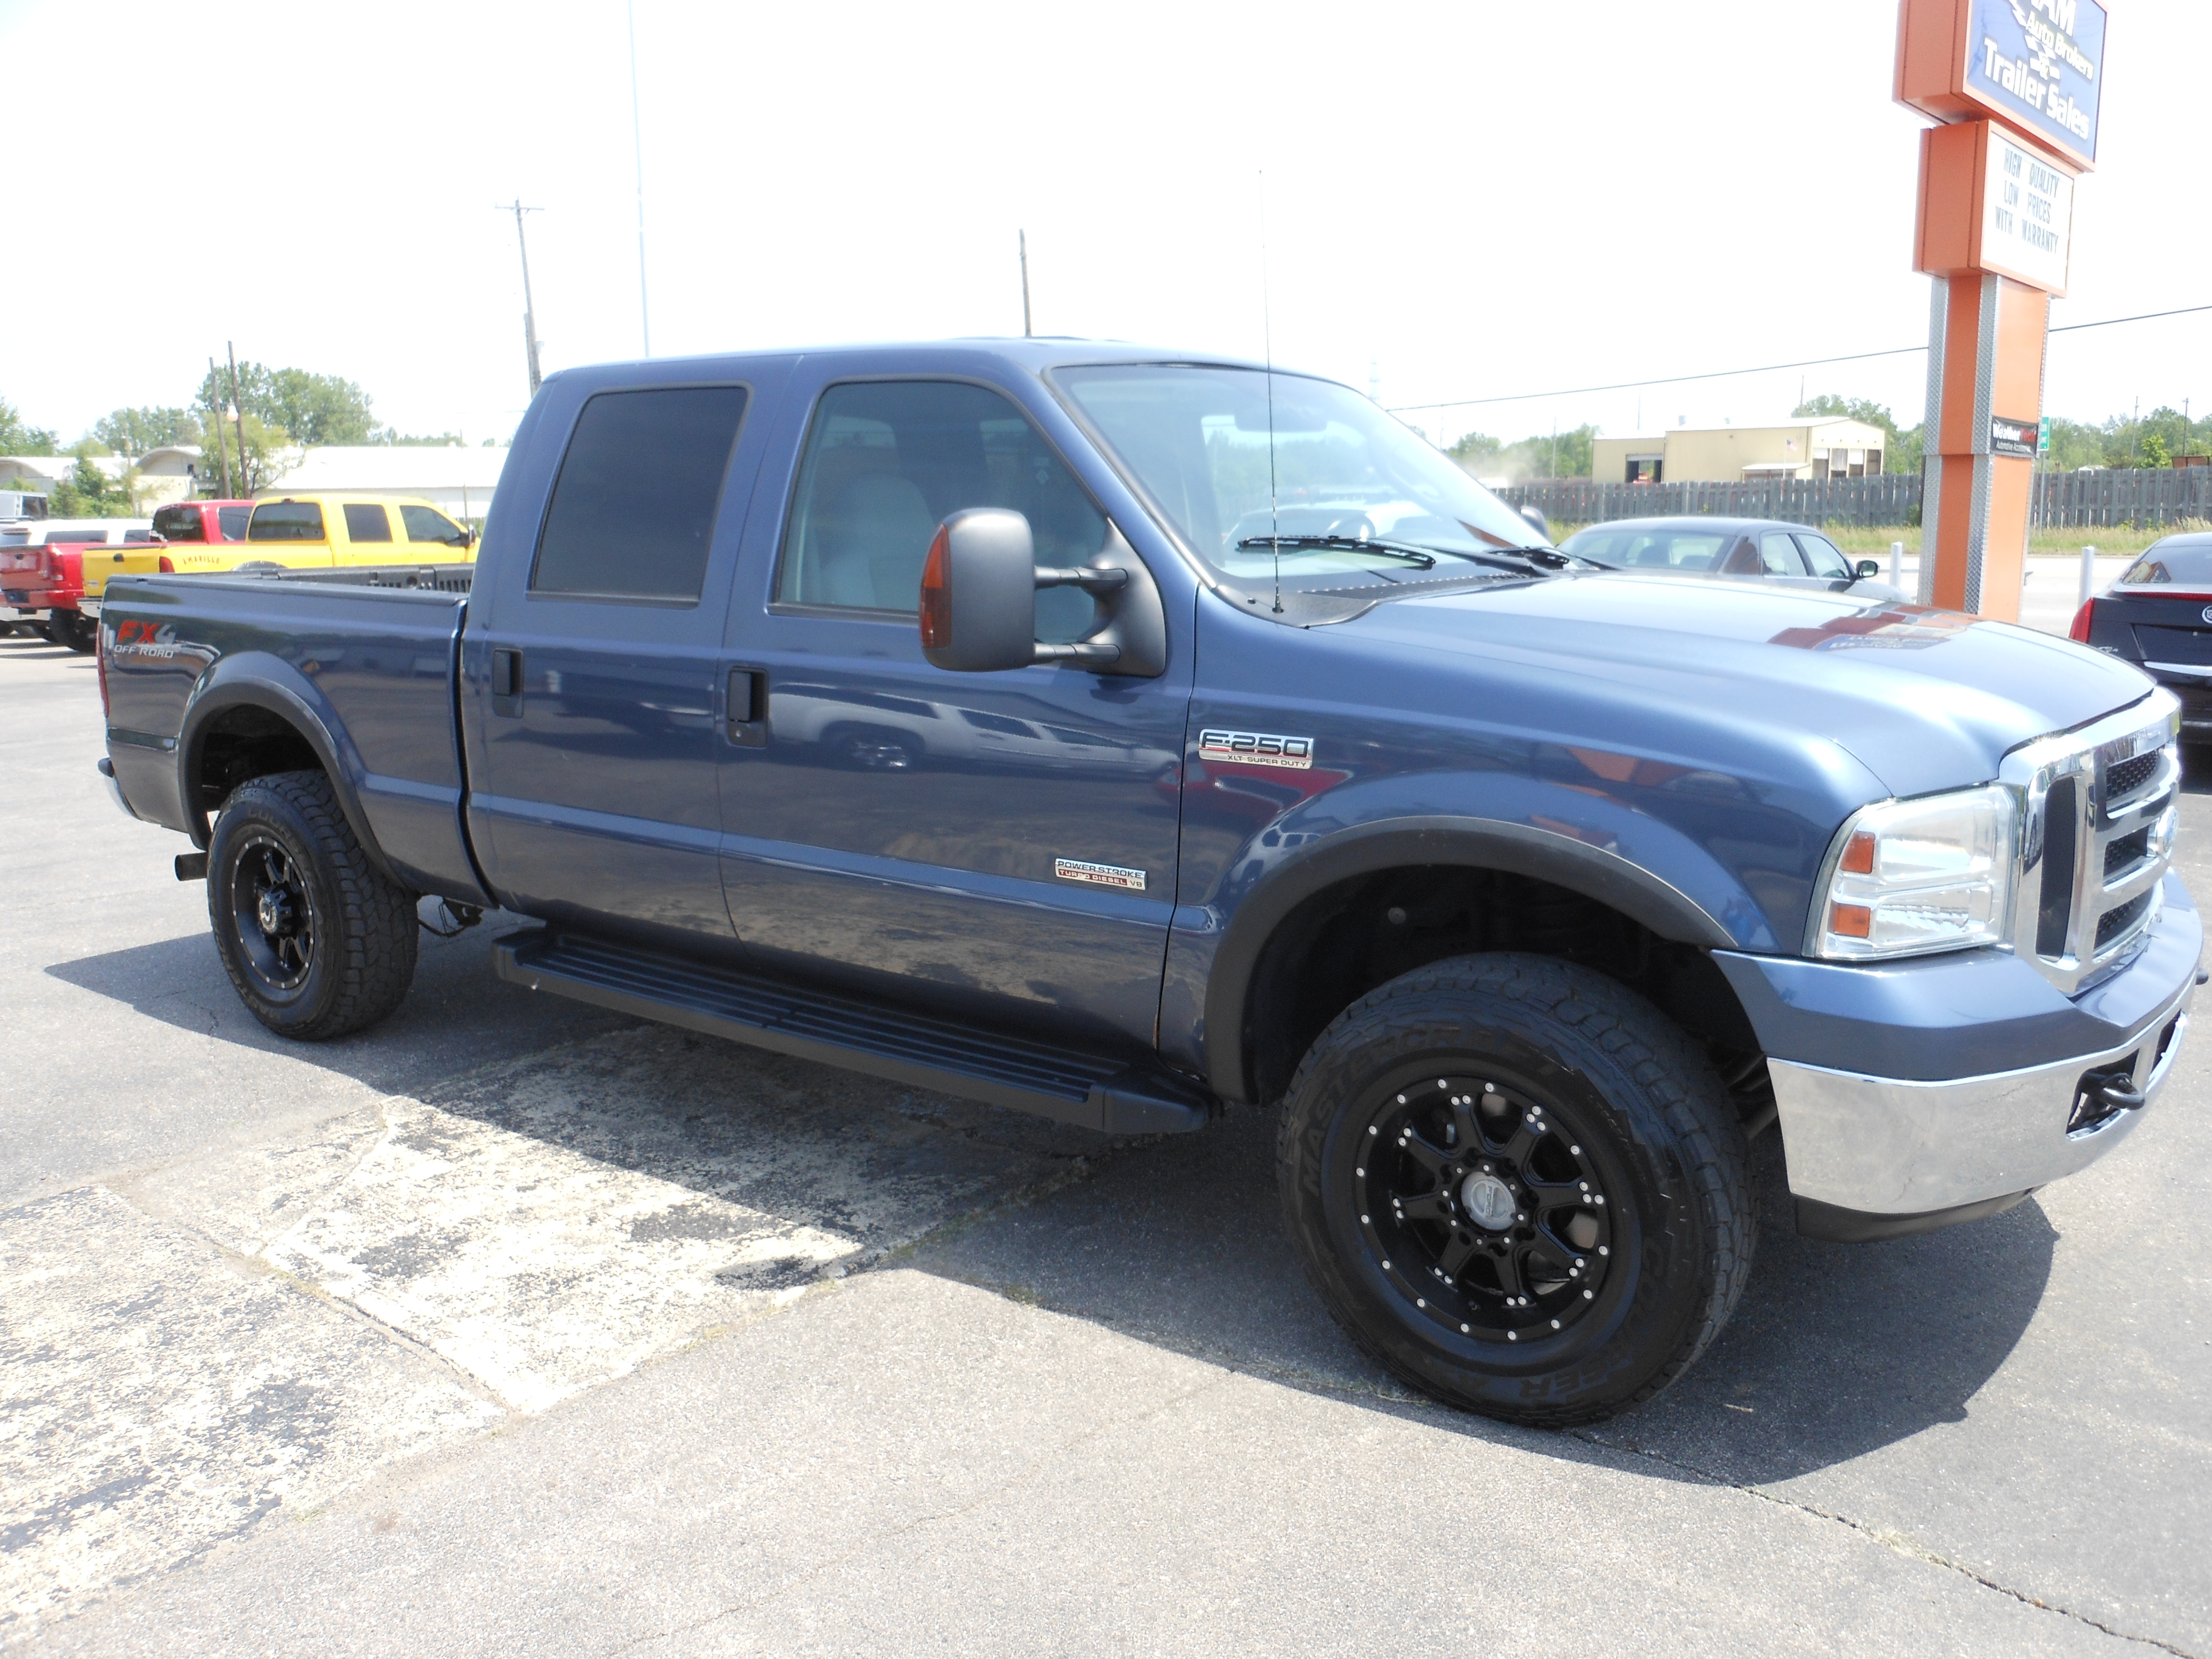 For Sale 2007 Ford F 250 Crew Cab 4x4 Diesel Denam Auto 1955 F250 60l Power Stroke Turbo Engine New Wheels Tires Leveling Kit Alignment 44 Factory Brake Controller Tow Package